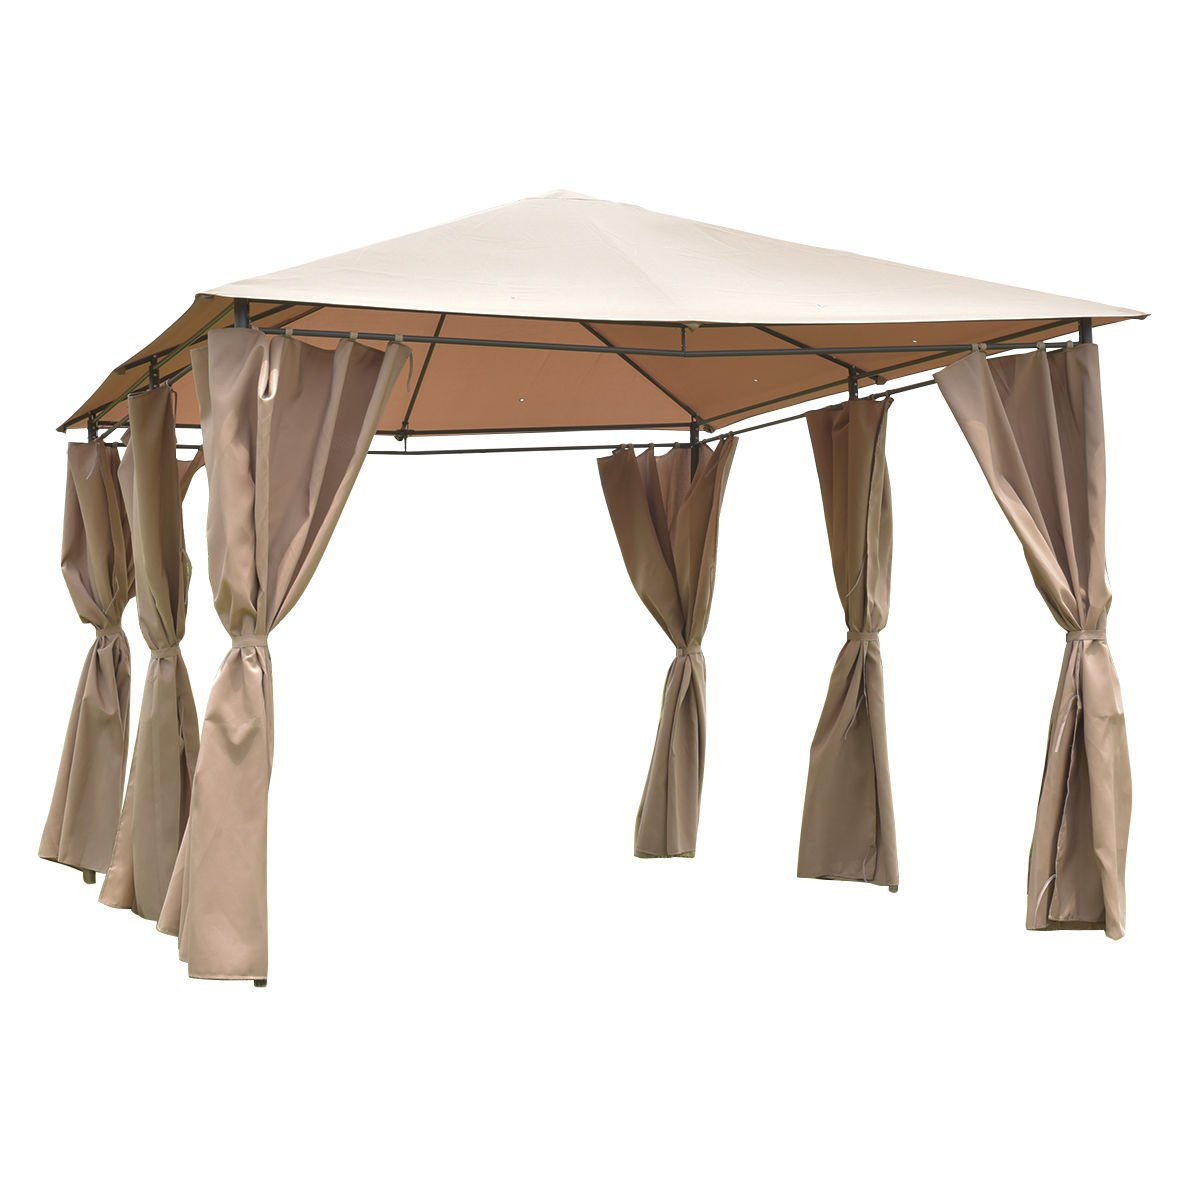 Tangkula 10'x13' Gazebo Fully Enclosed Canopy Tent Shelter Awning Garden Patio (Brown)